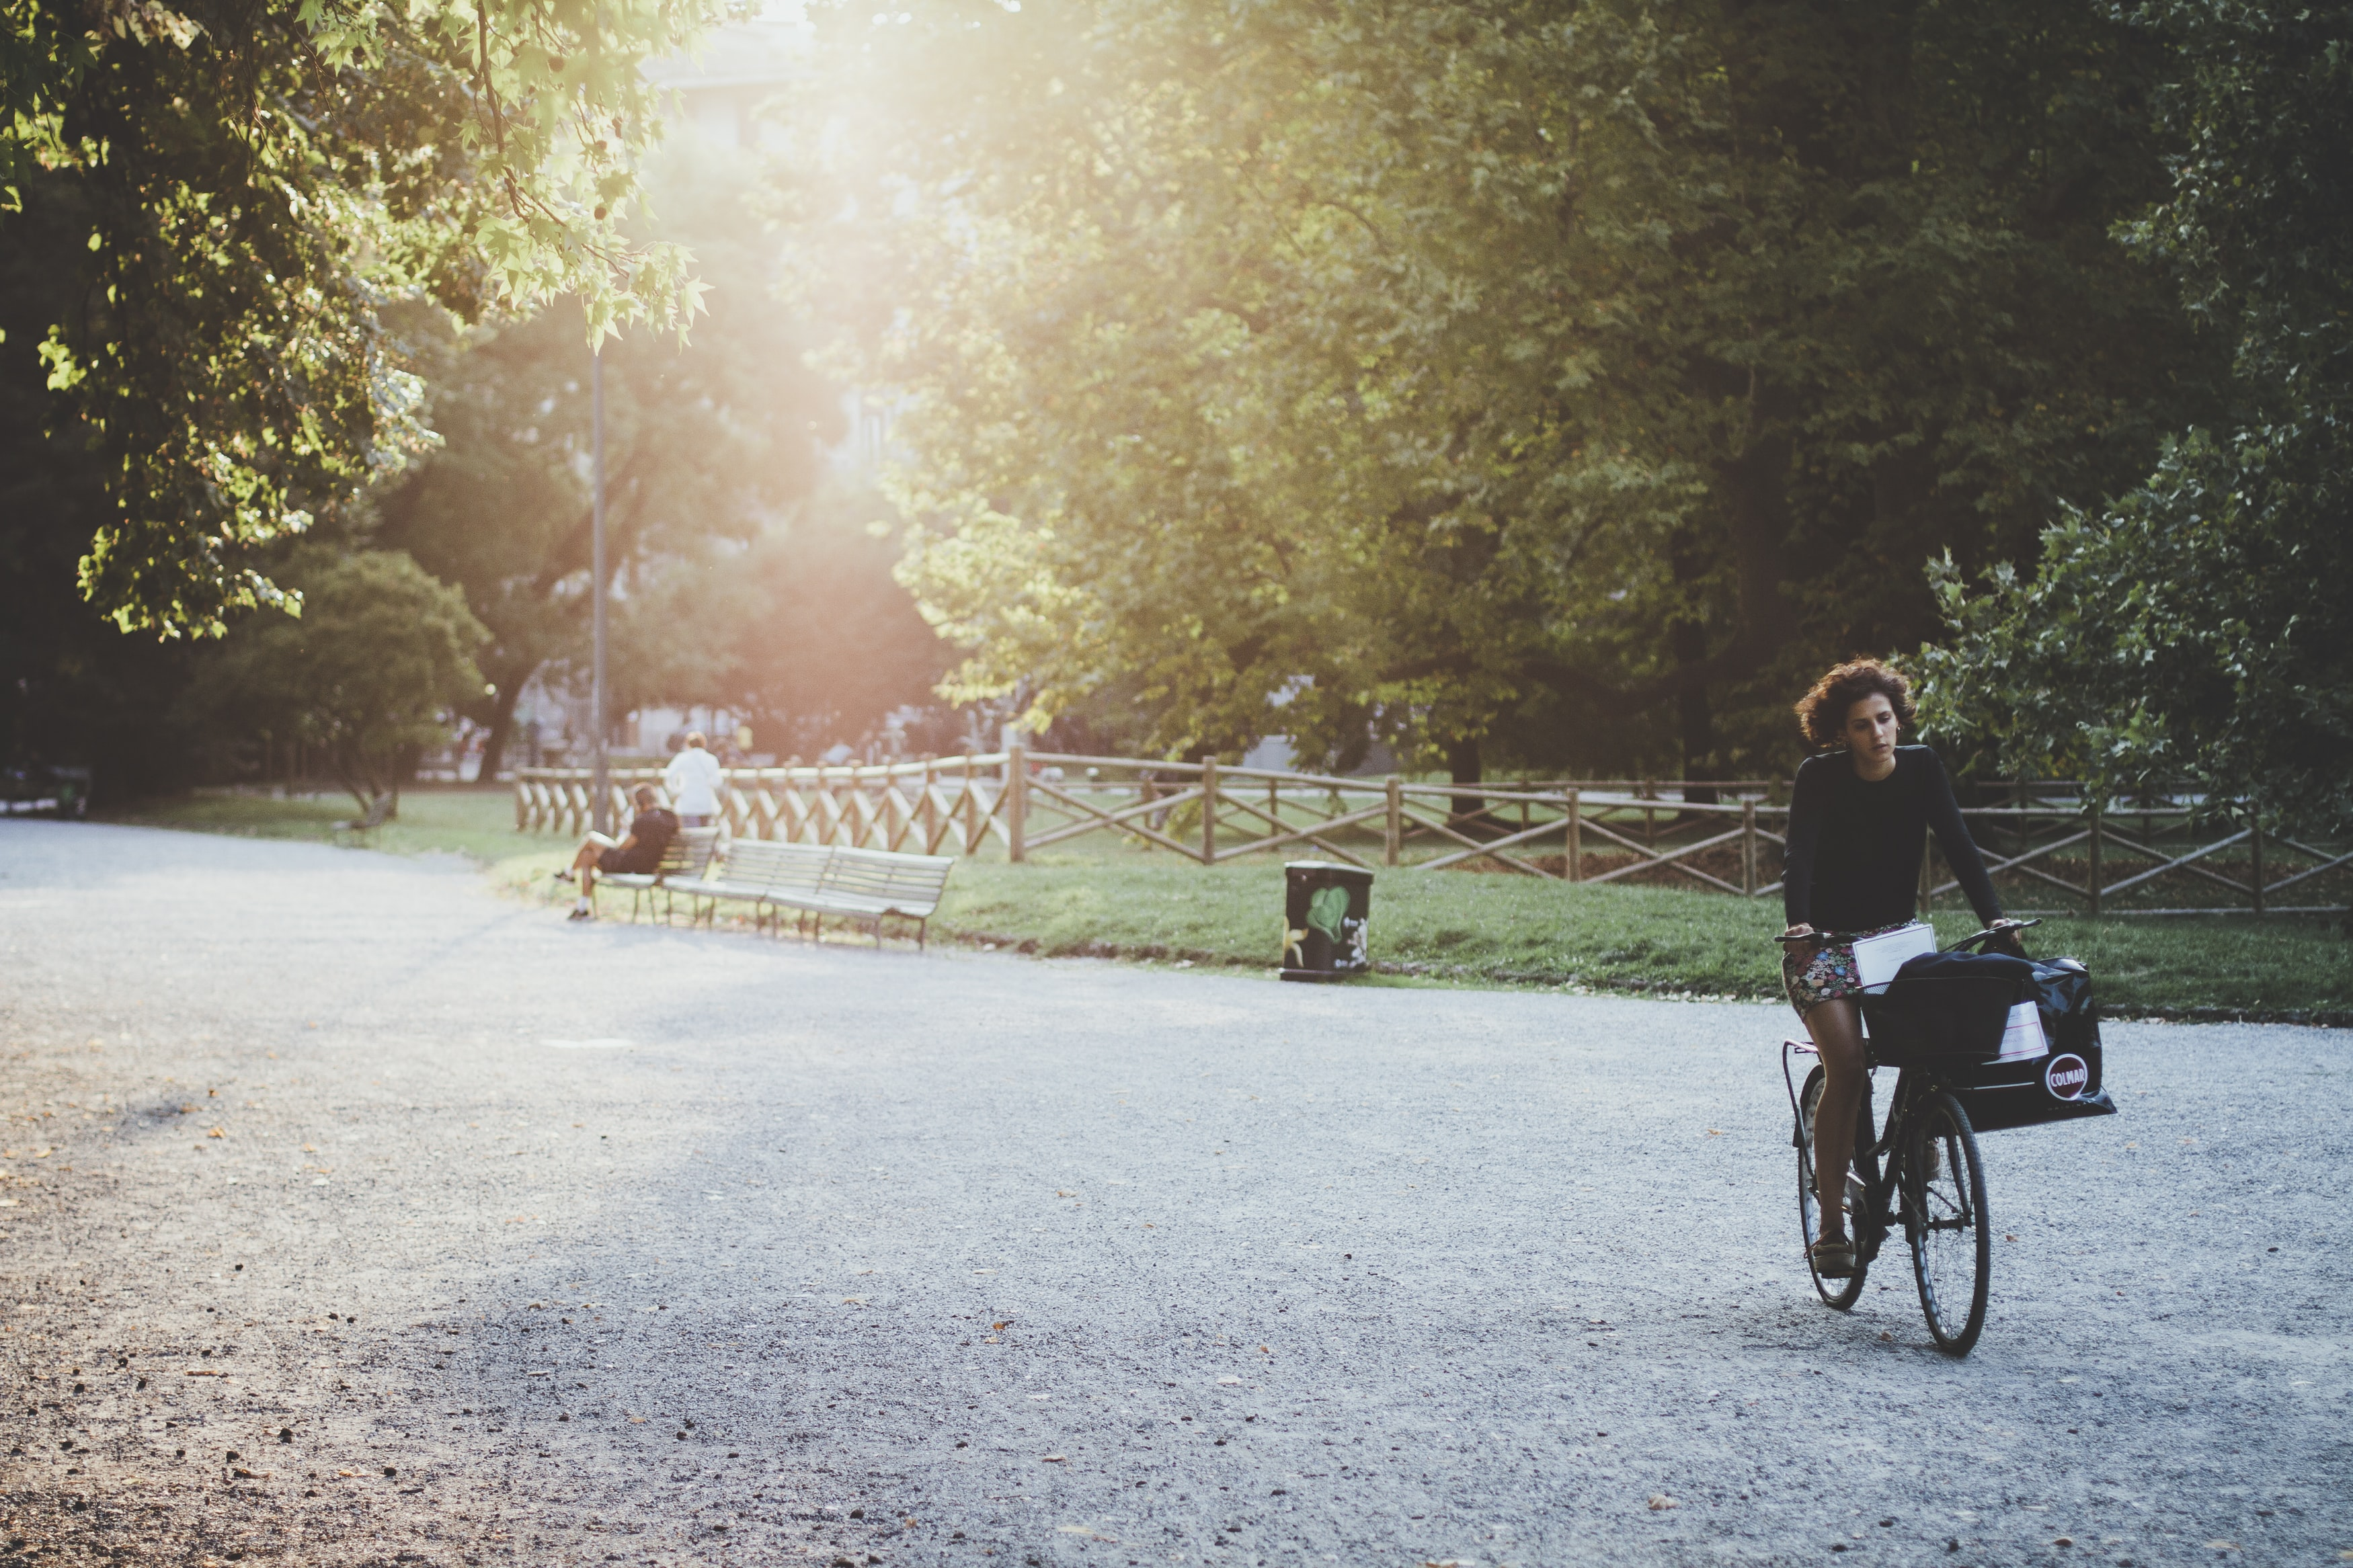 A woman riding a bicycle in a park lane on a sunny evening